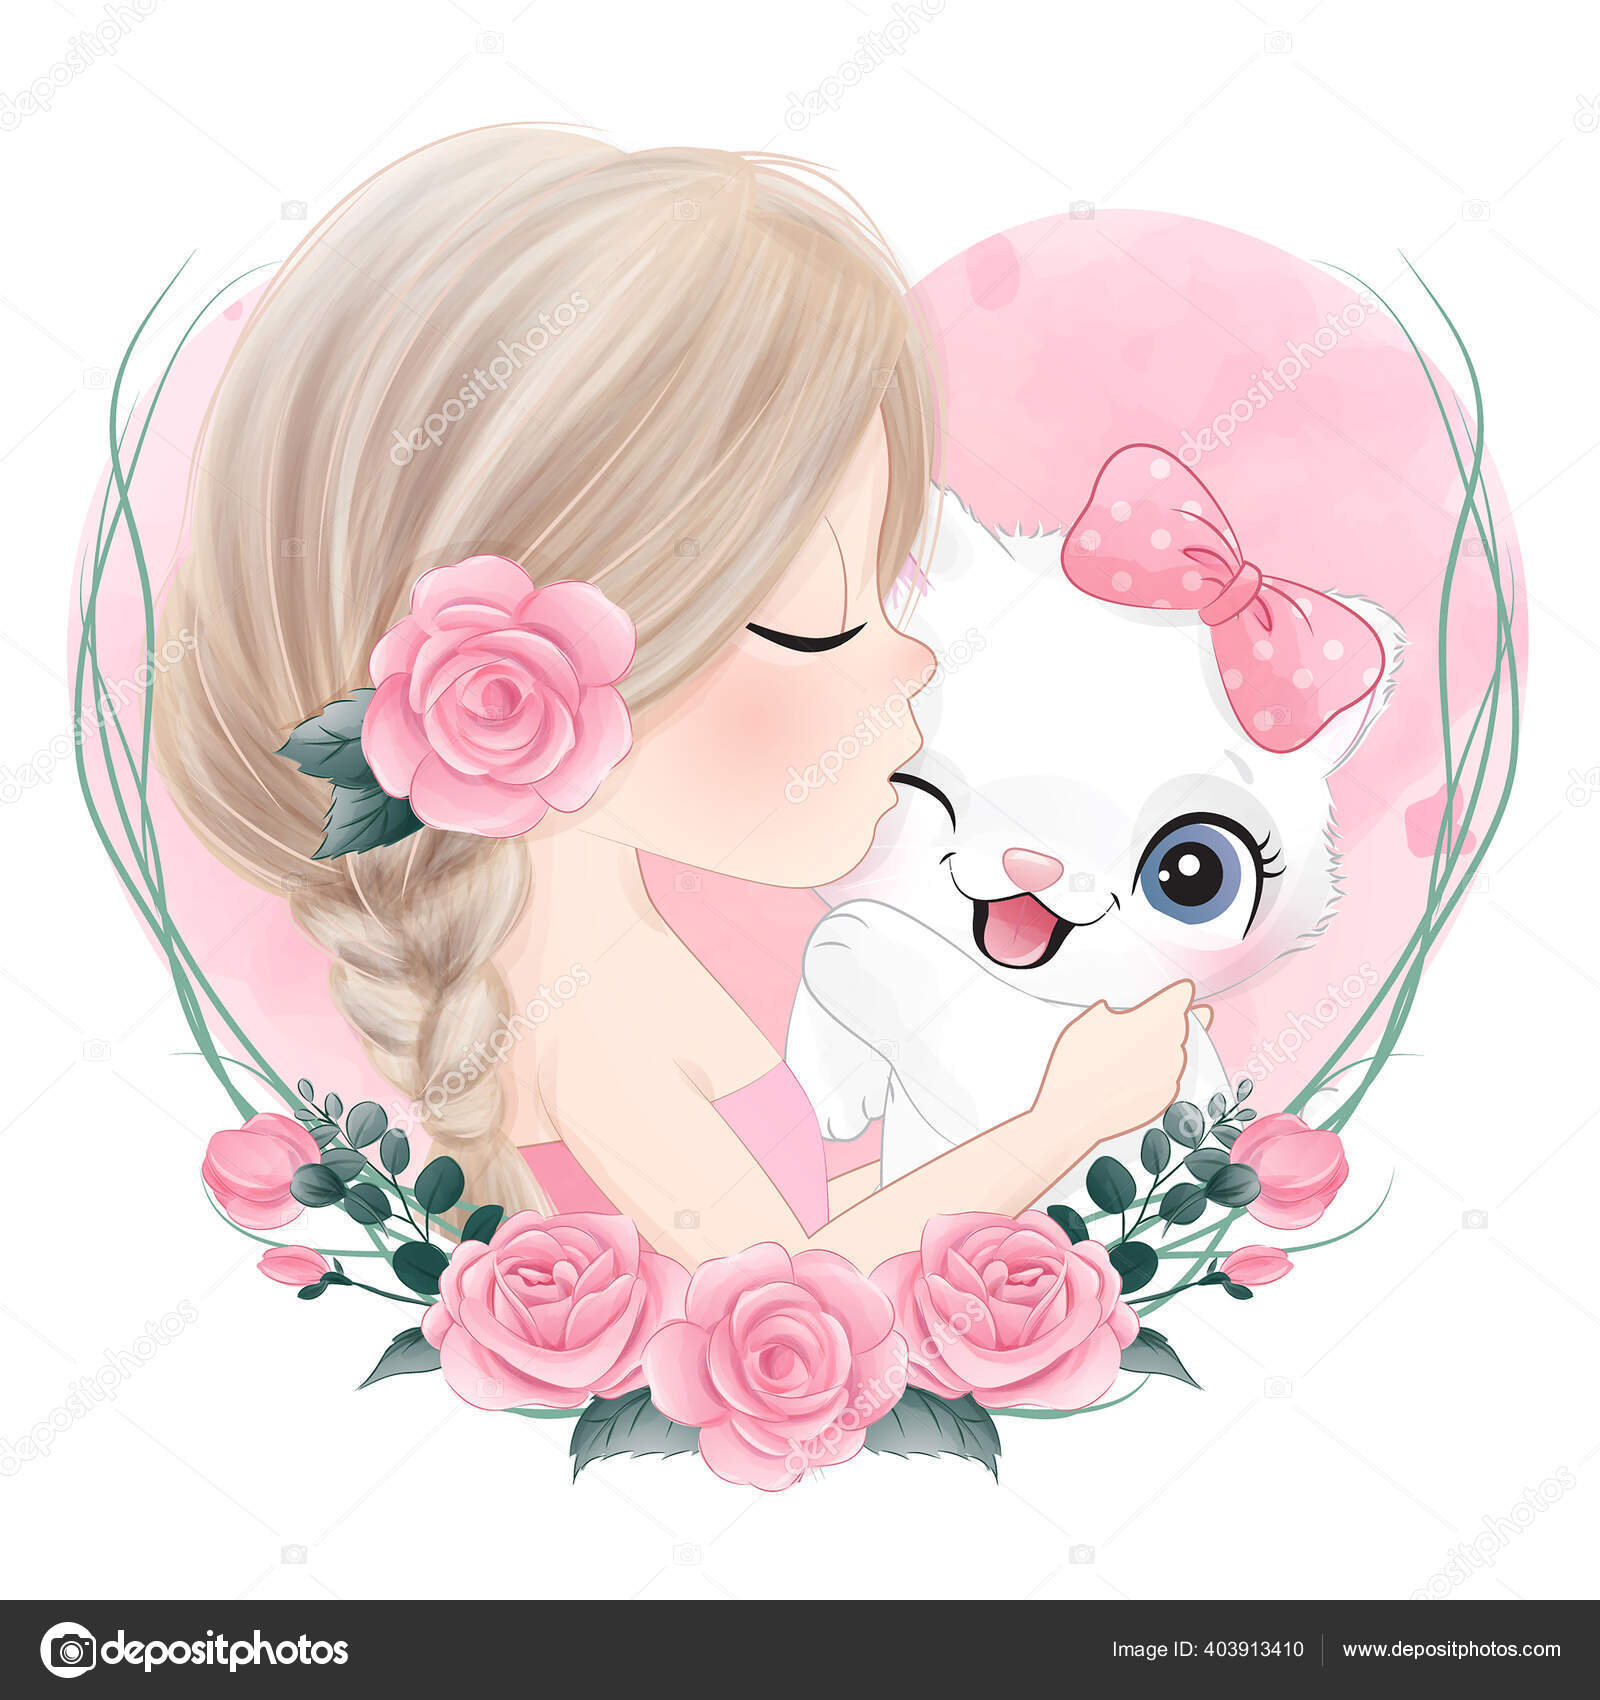 Download 46 Shower Kissing Vector Images Free Royalty Free Shower Kissing Vectors Depositphotos